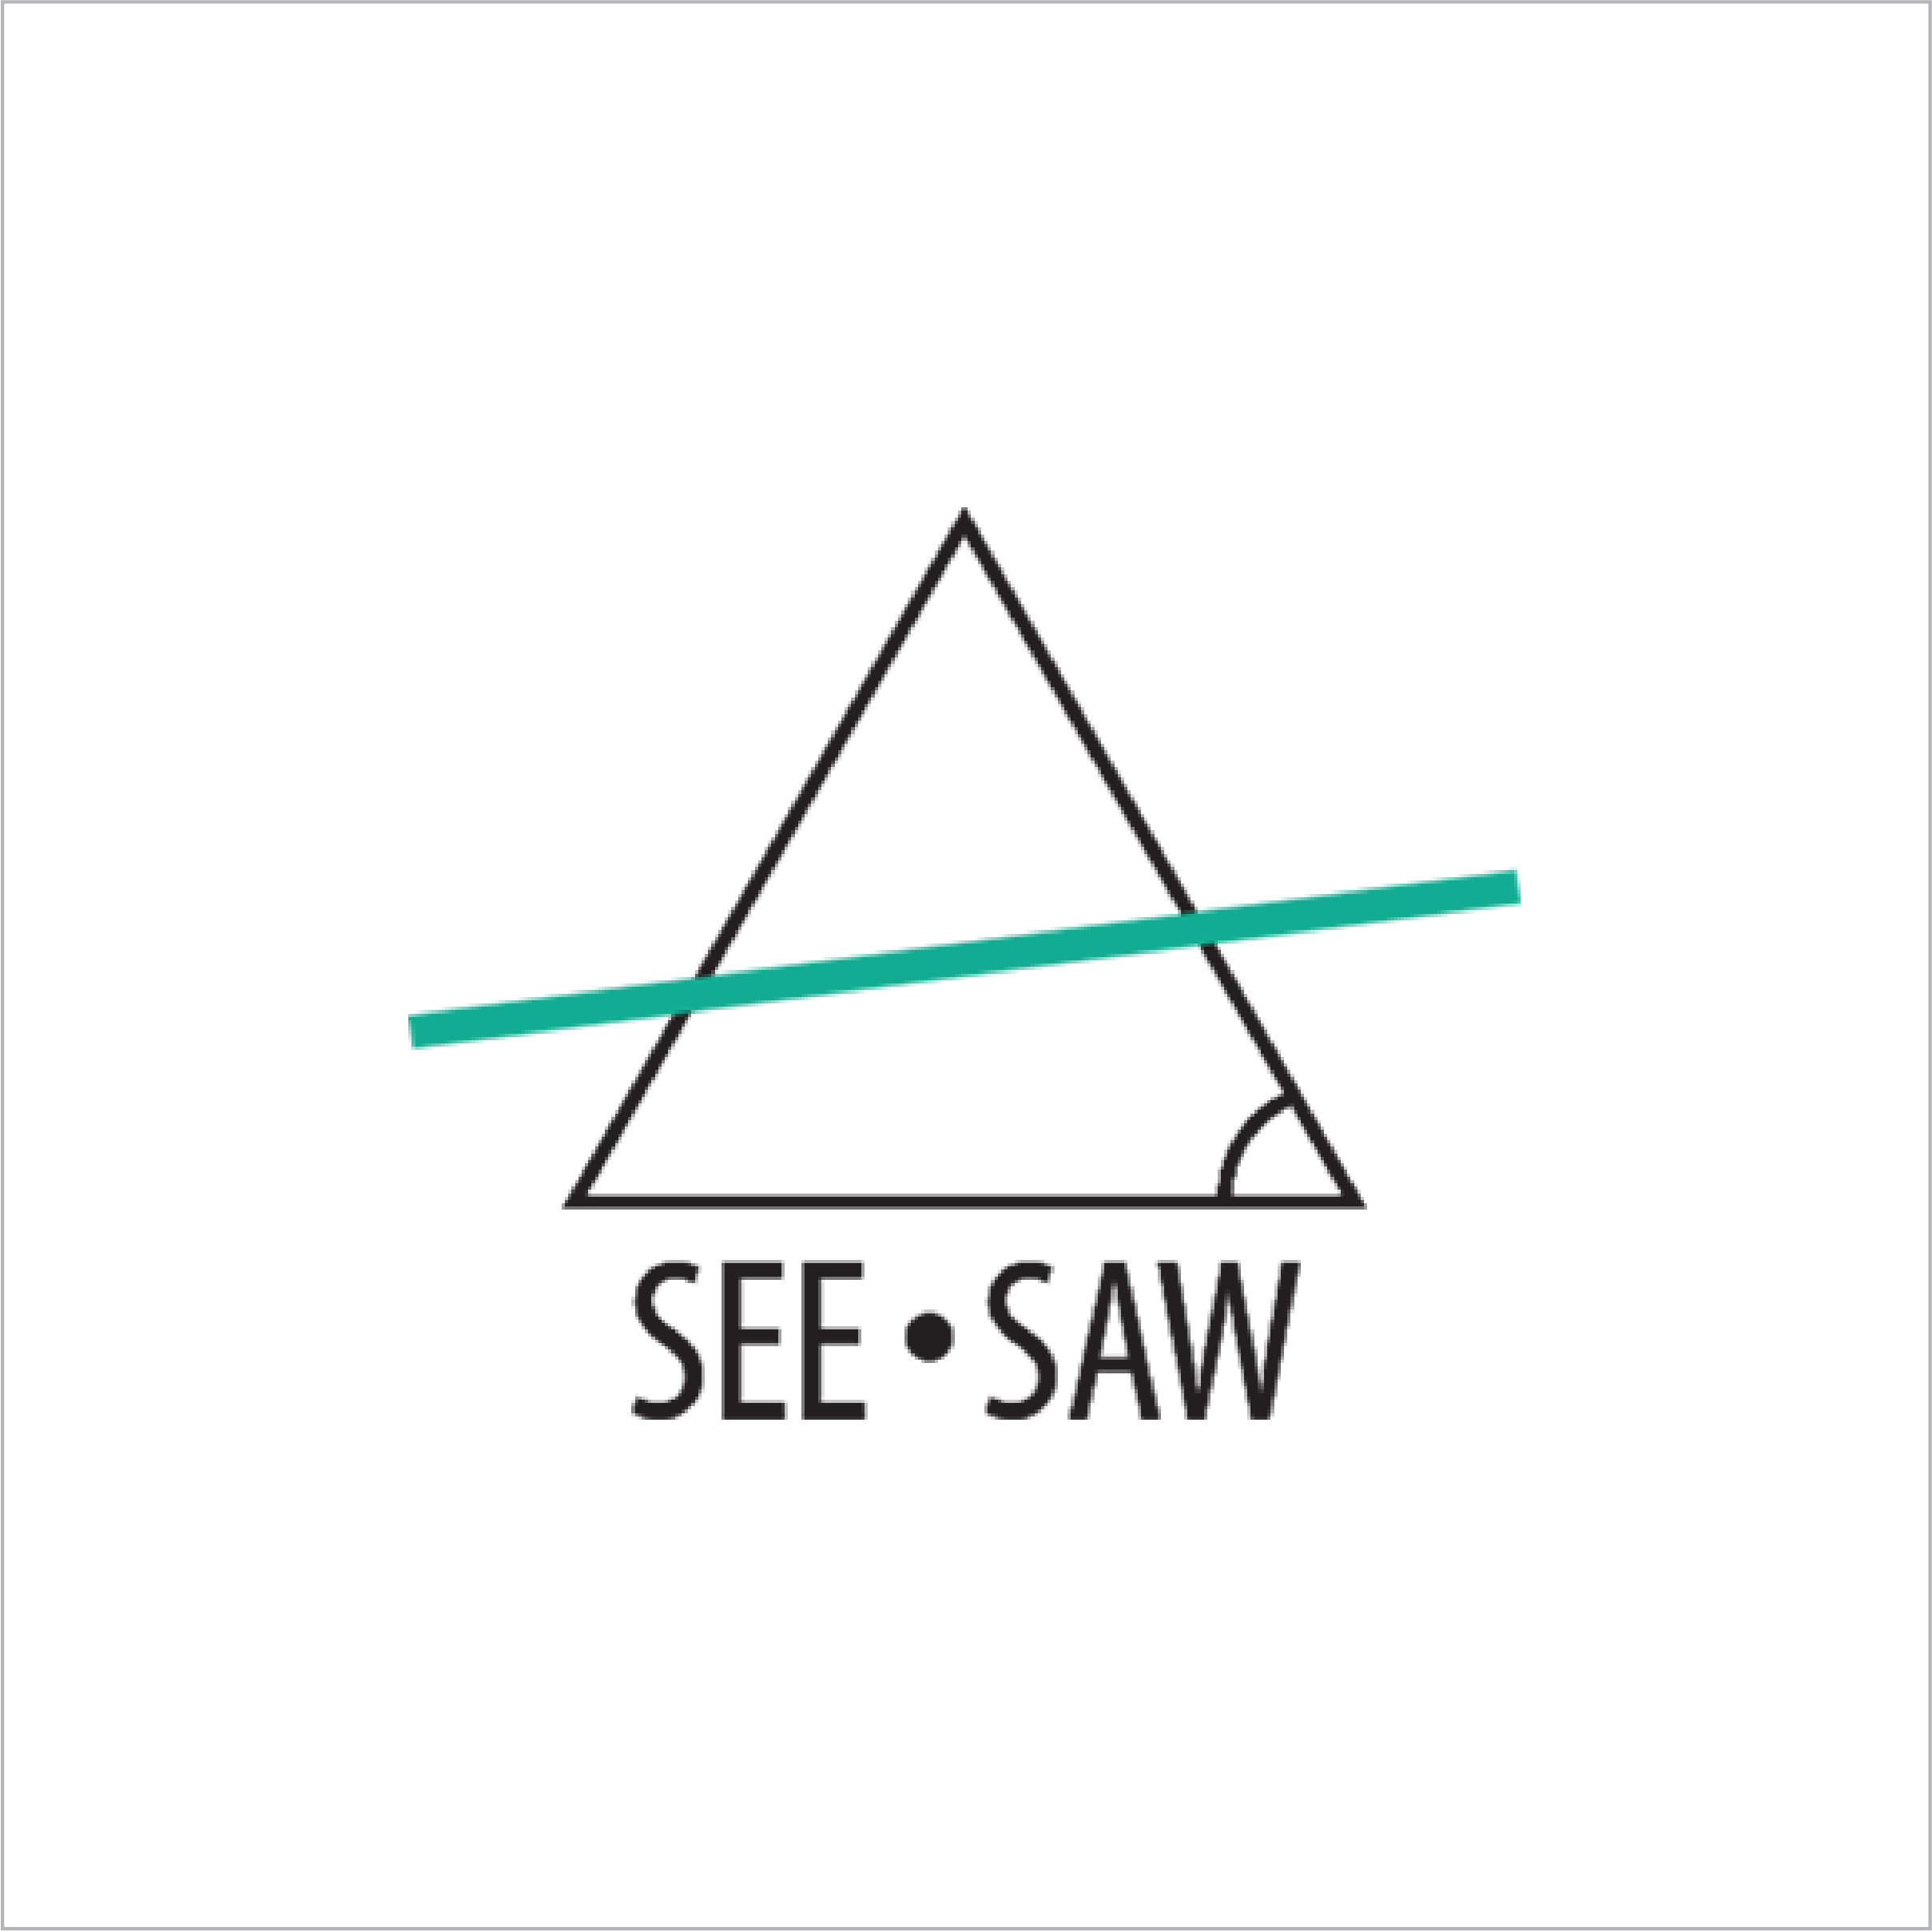 See·Saw